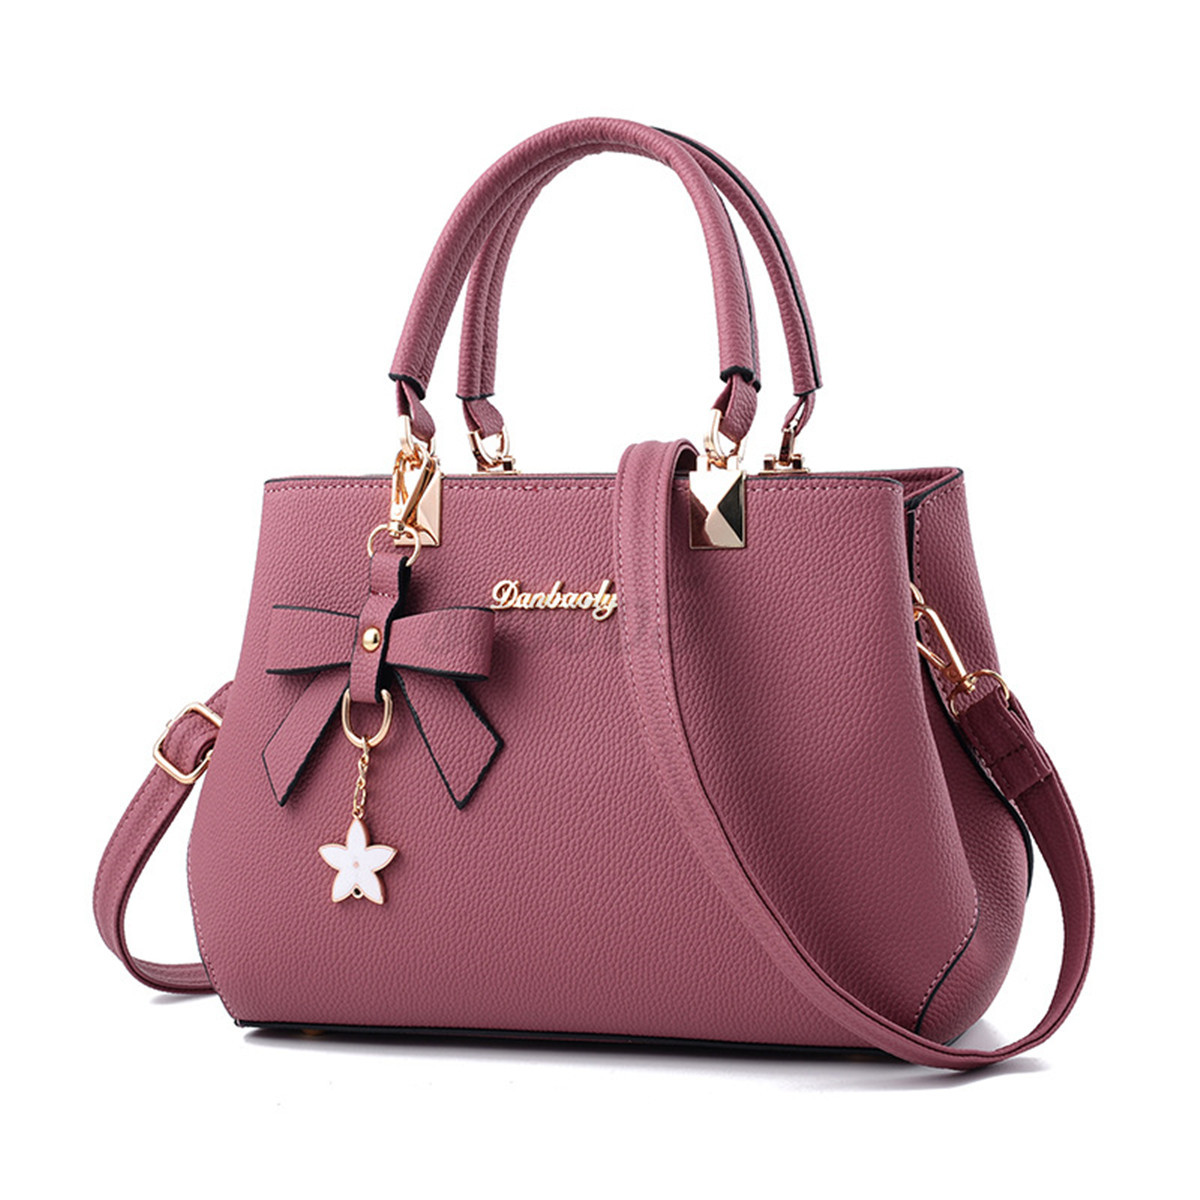 Shop women's bags & handbags from Burberry including shoulder bags, exotic clutches, bowling and tote bags in iconic check and brightly coloured leather. Shop women's bags & handbags from Burberry including shoulder bags, exotic clutches, bowling and tote bags in .